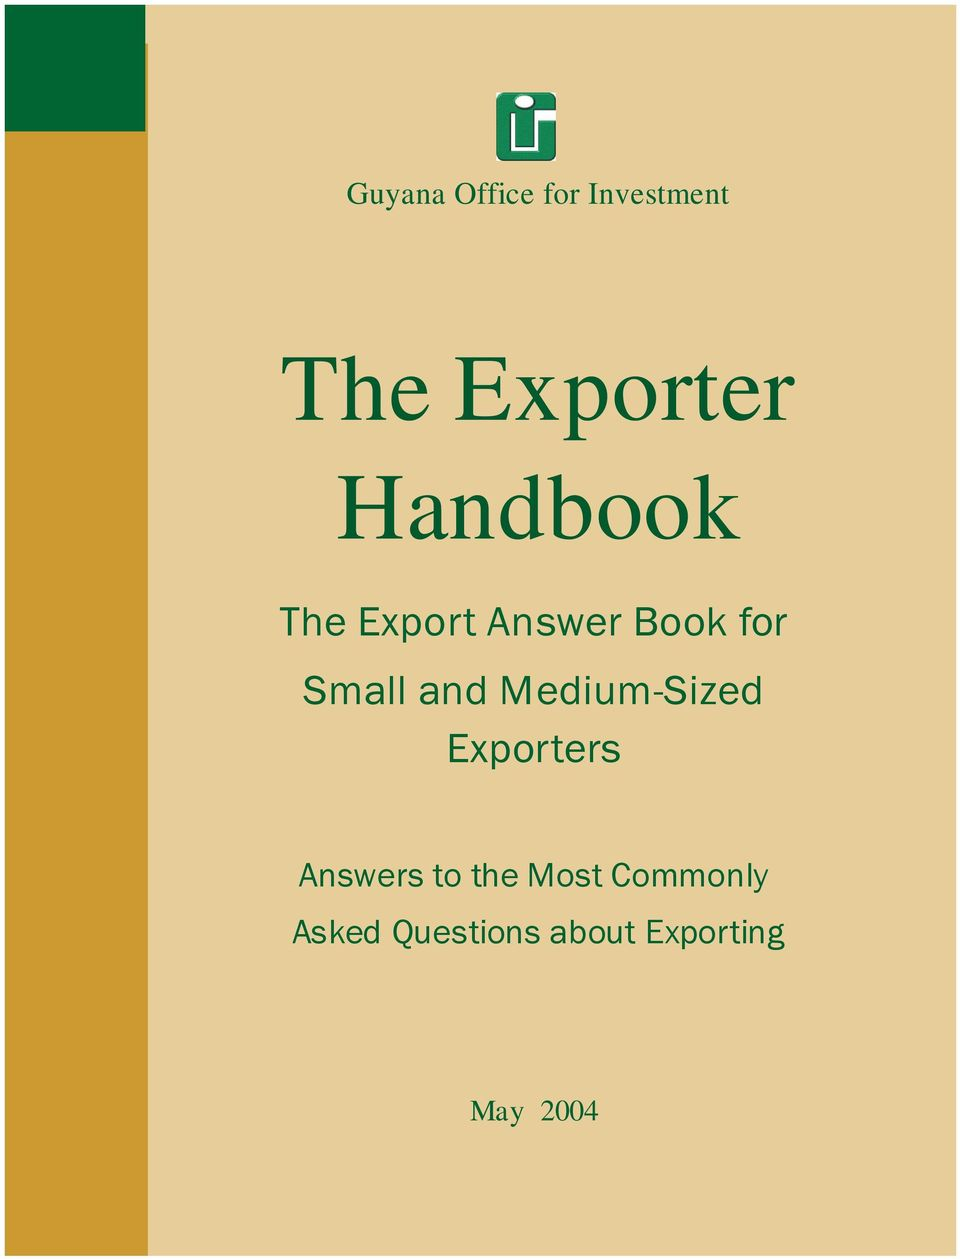 The Exporter